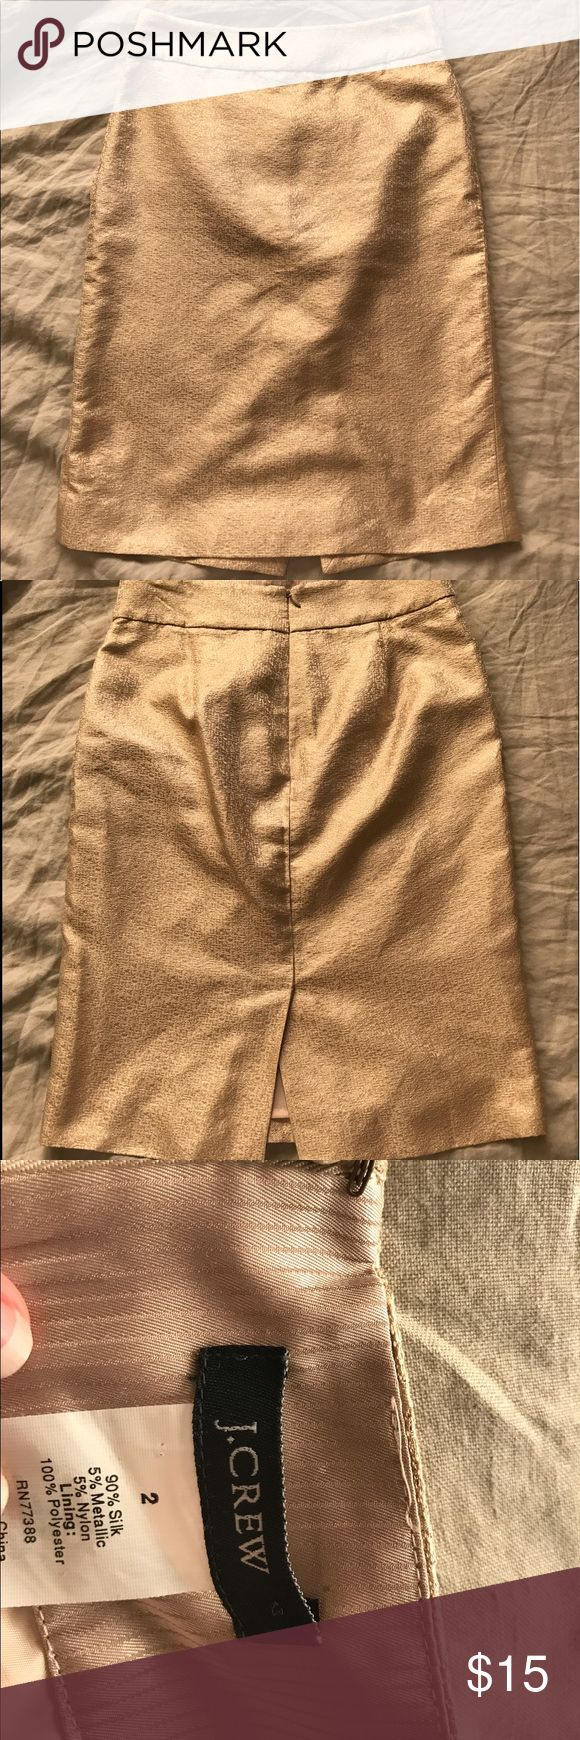 J Crew gold pencil skirt Silk blend gold textured pencil skirt 🌞 excellent condition, so sad that I can't make it work for my hips J. Crew Skirts Pencil